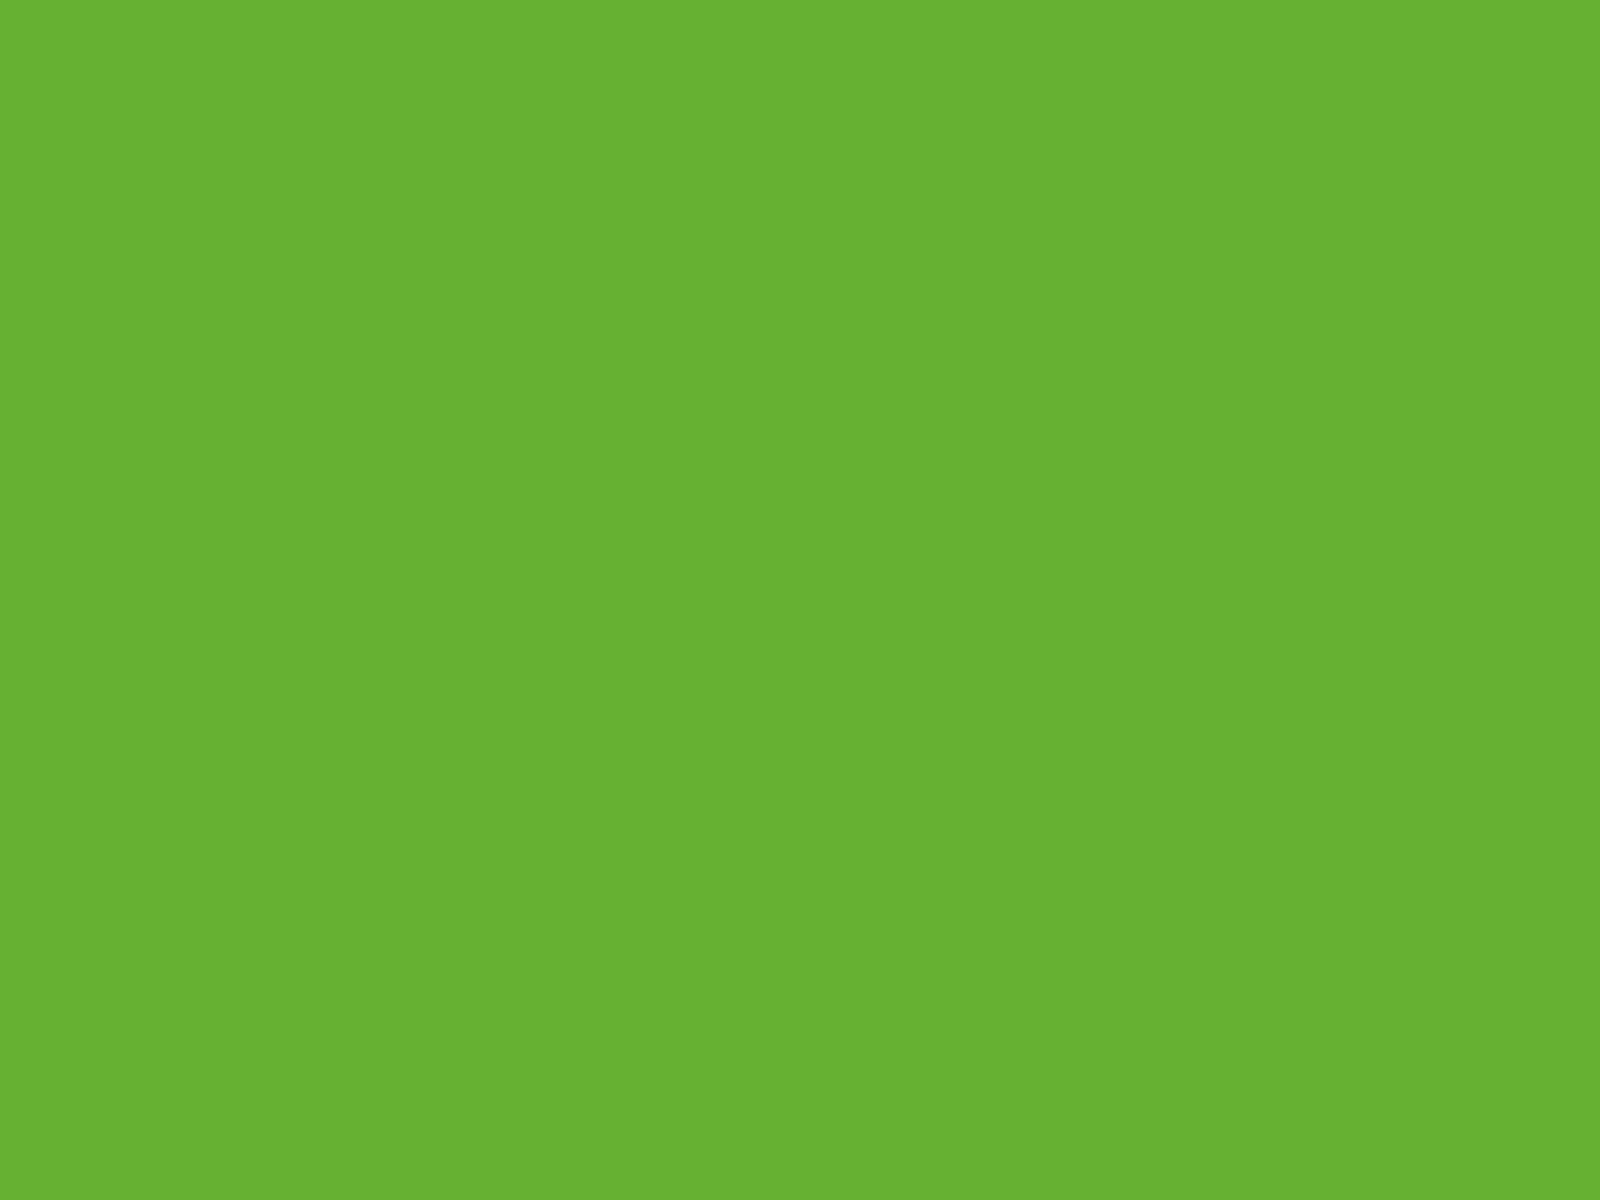 1600x1200 Green RYB Solid Color Background